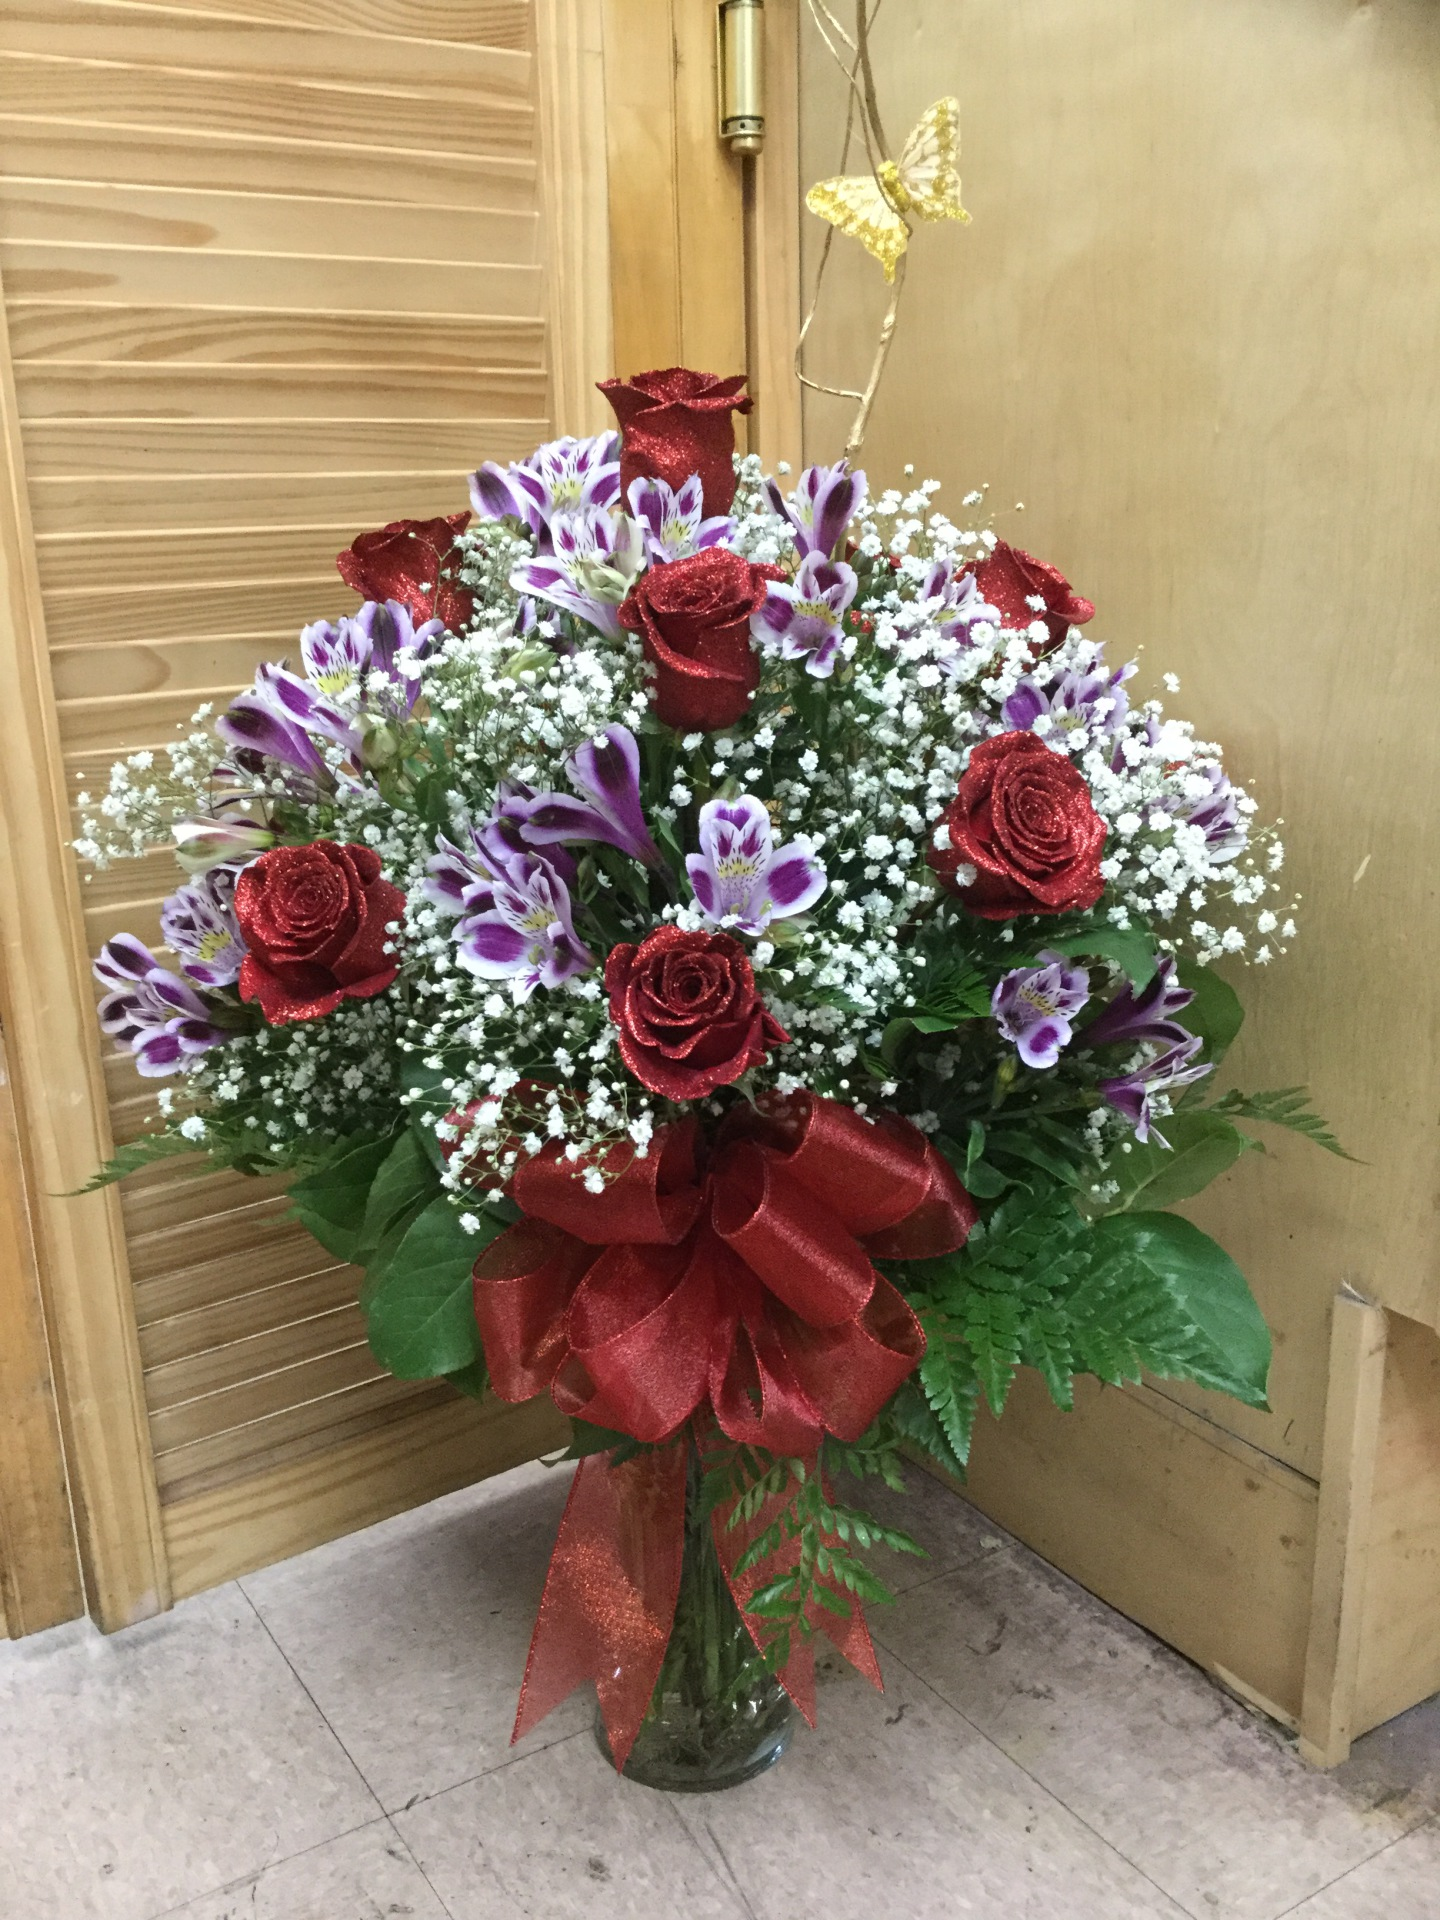 One Dozen Red Roses with Alstroemeria - Arrangement In Vase